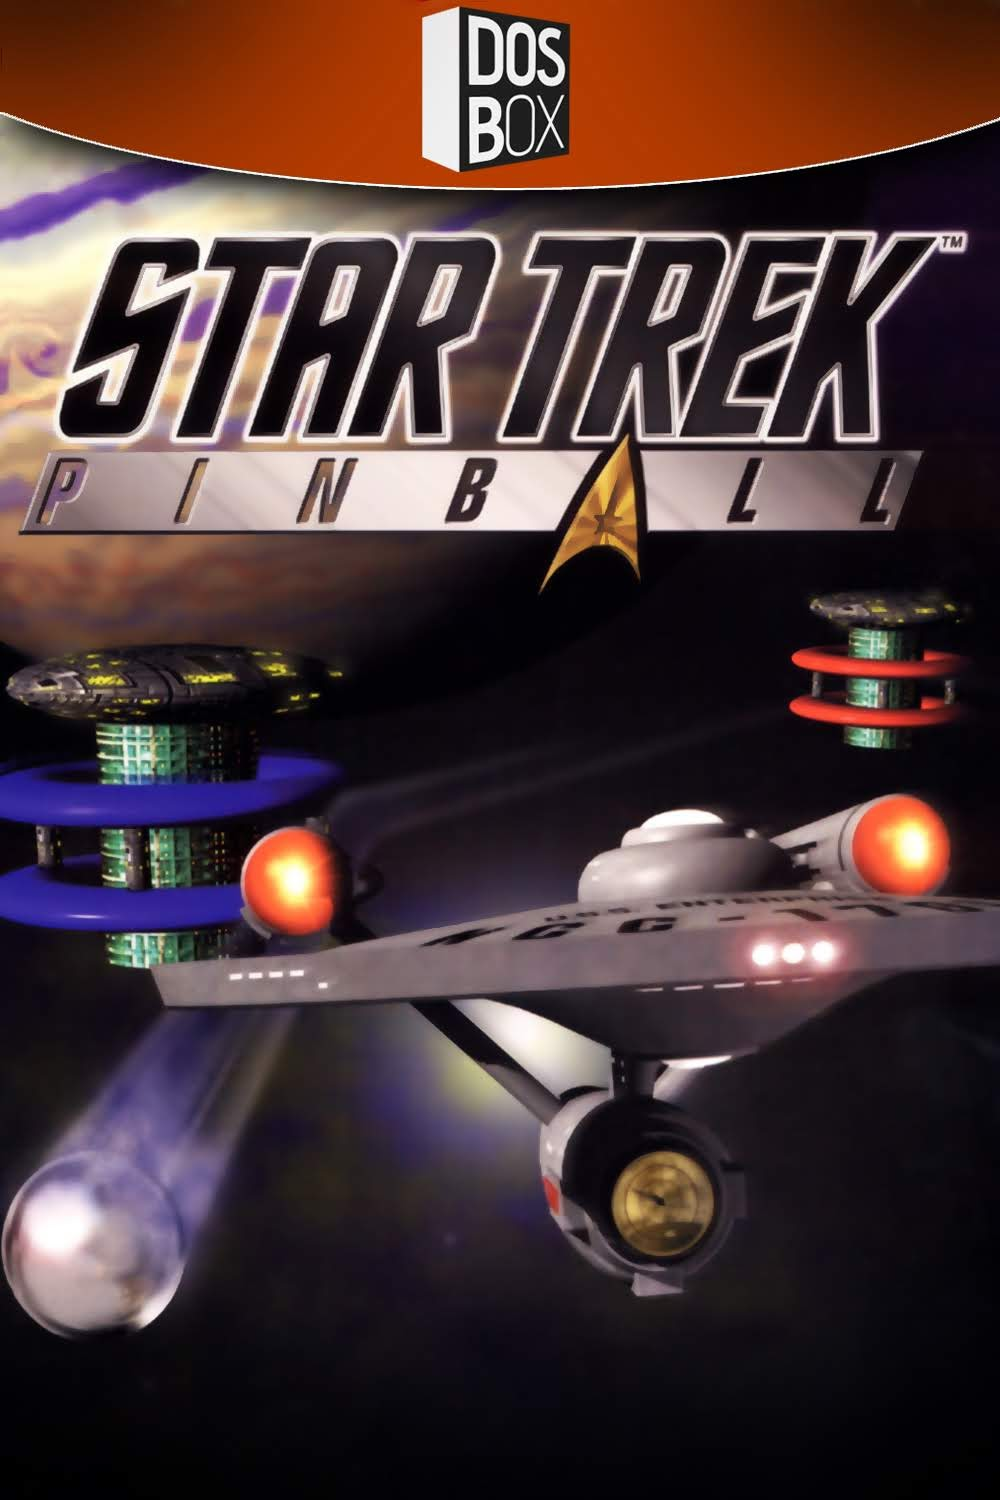 https://collectionchamber.blogspot.com/p/star-trek-pinball.html